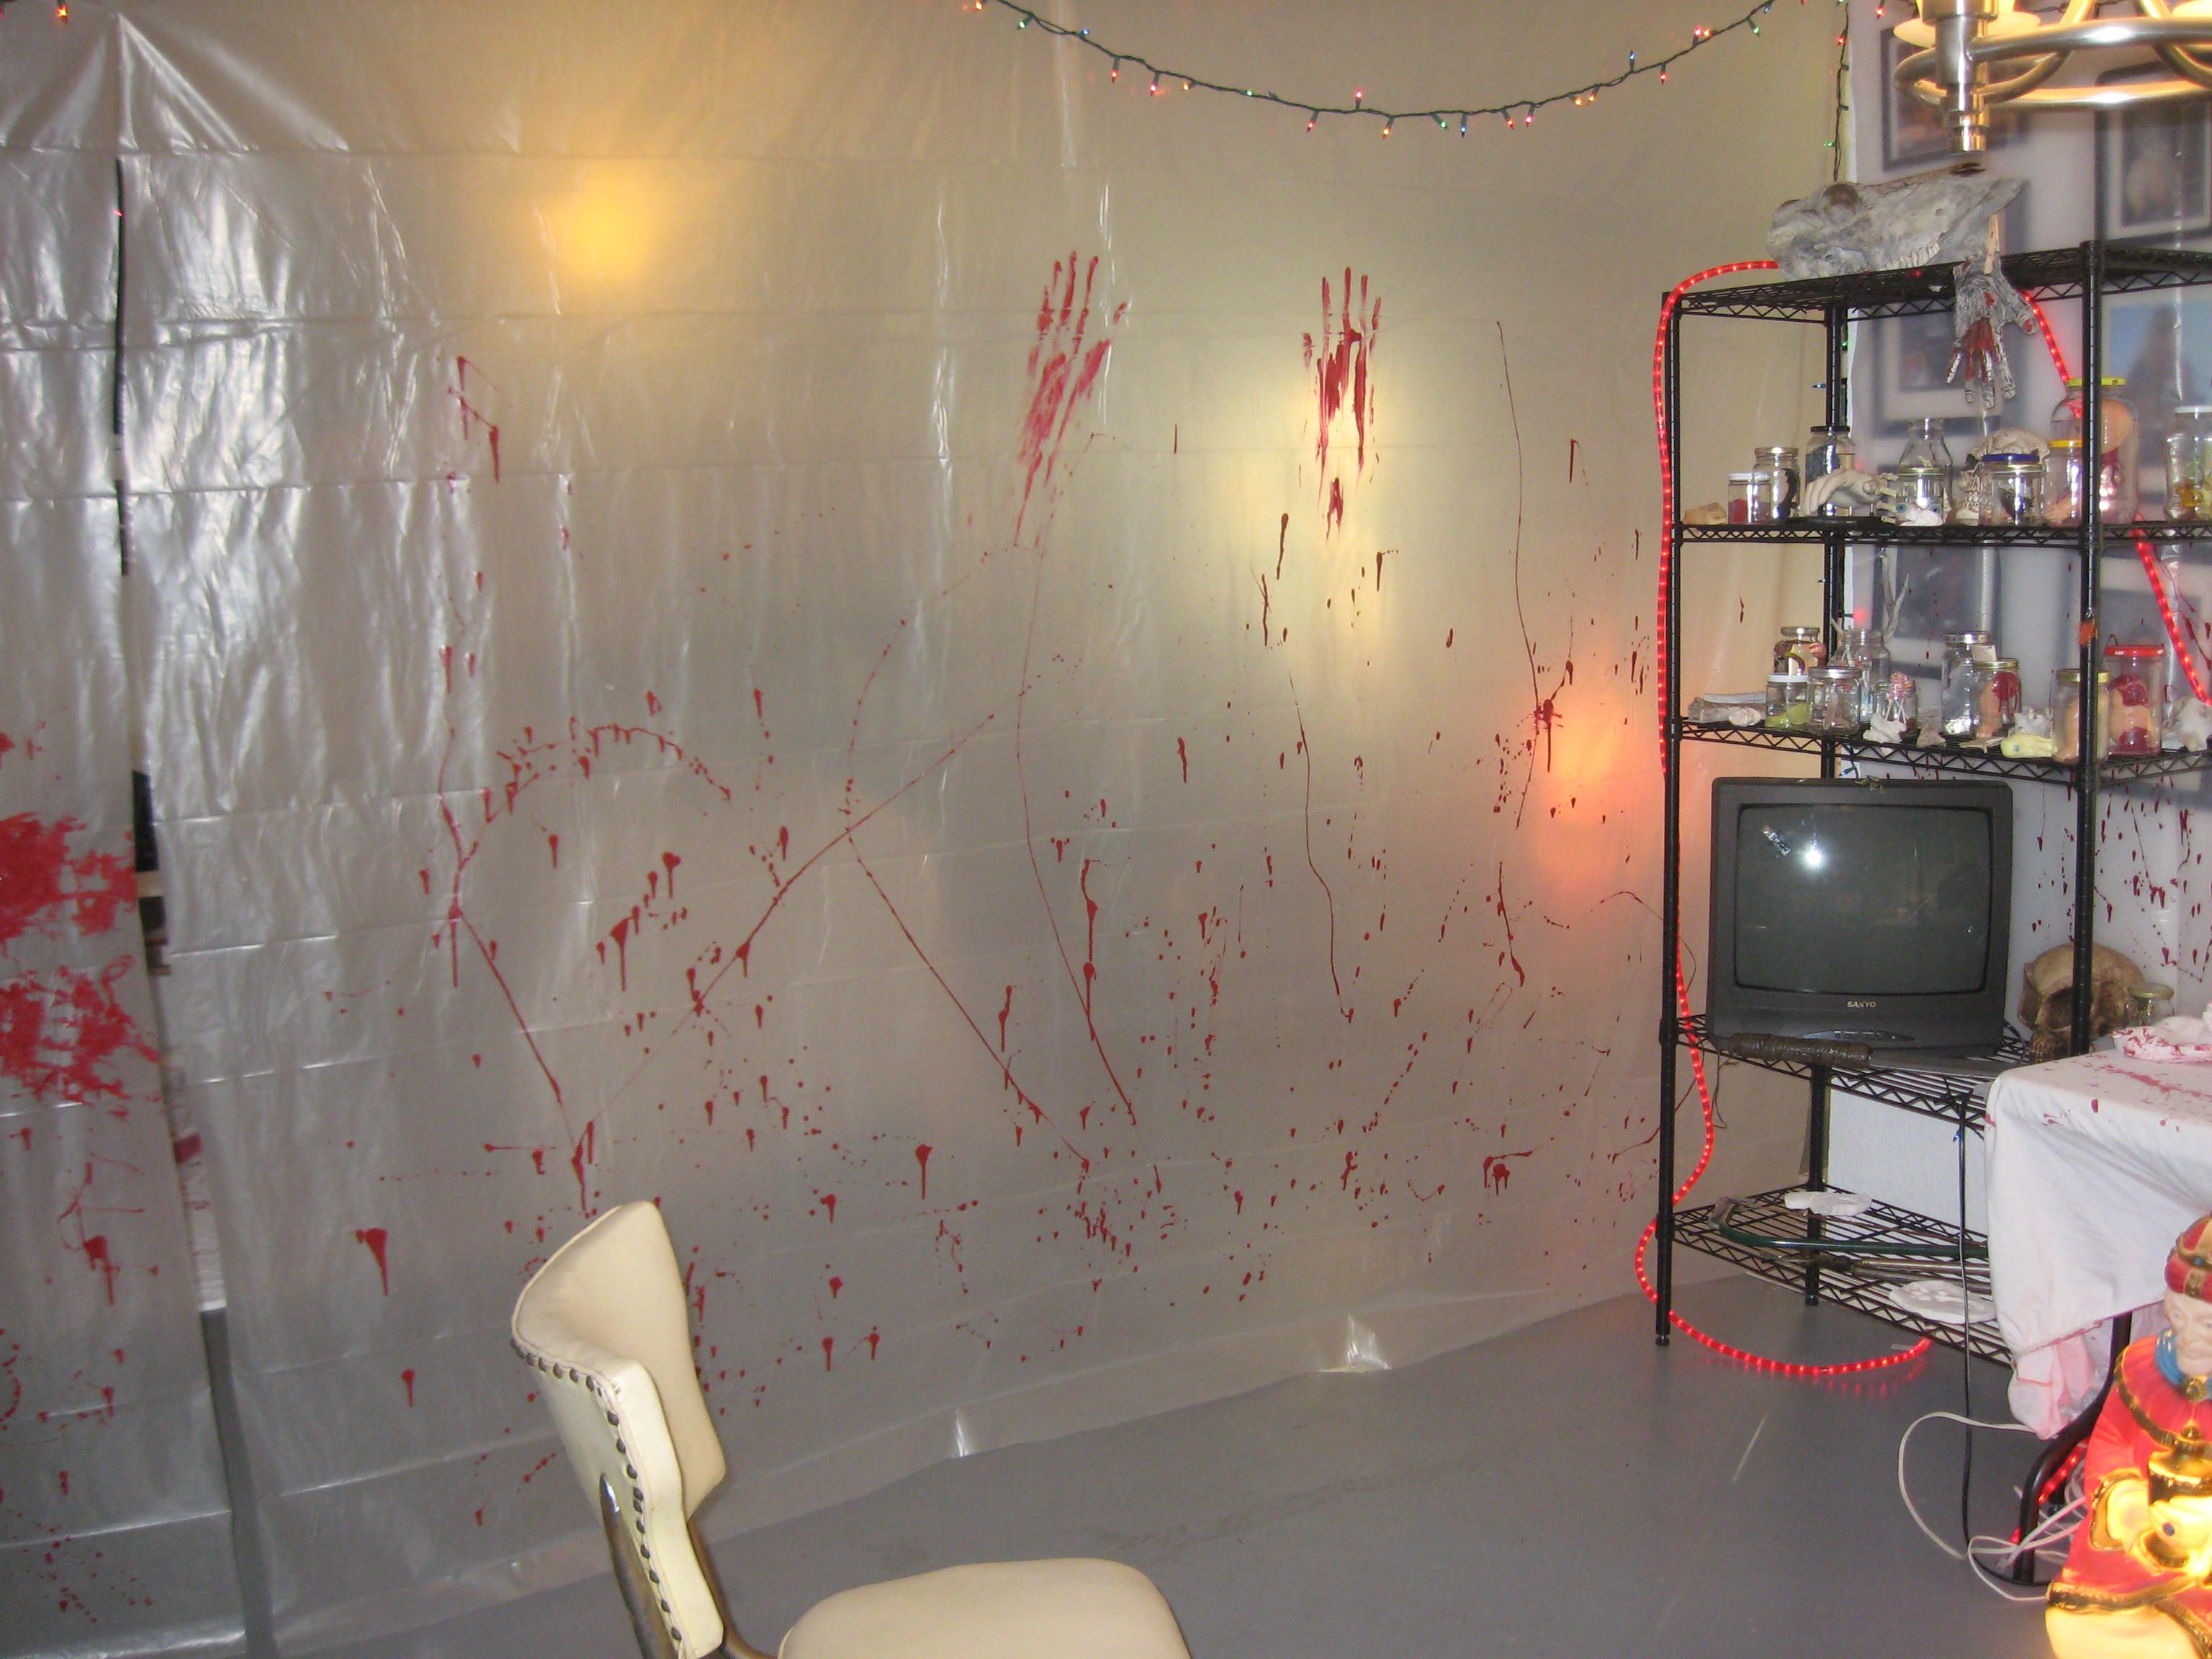 hanging creepy blood stained plastic sheeting would give the haunted hospital   insane asylum